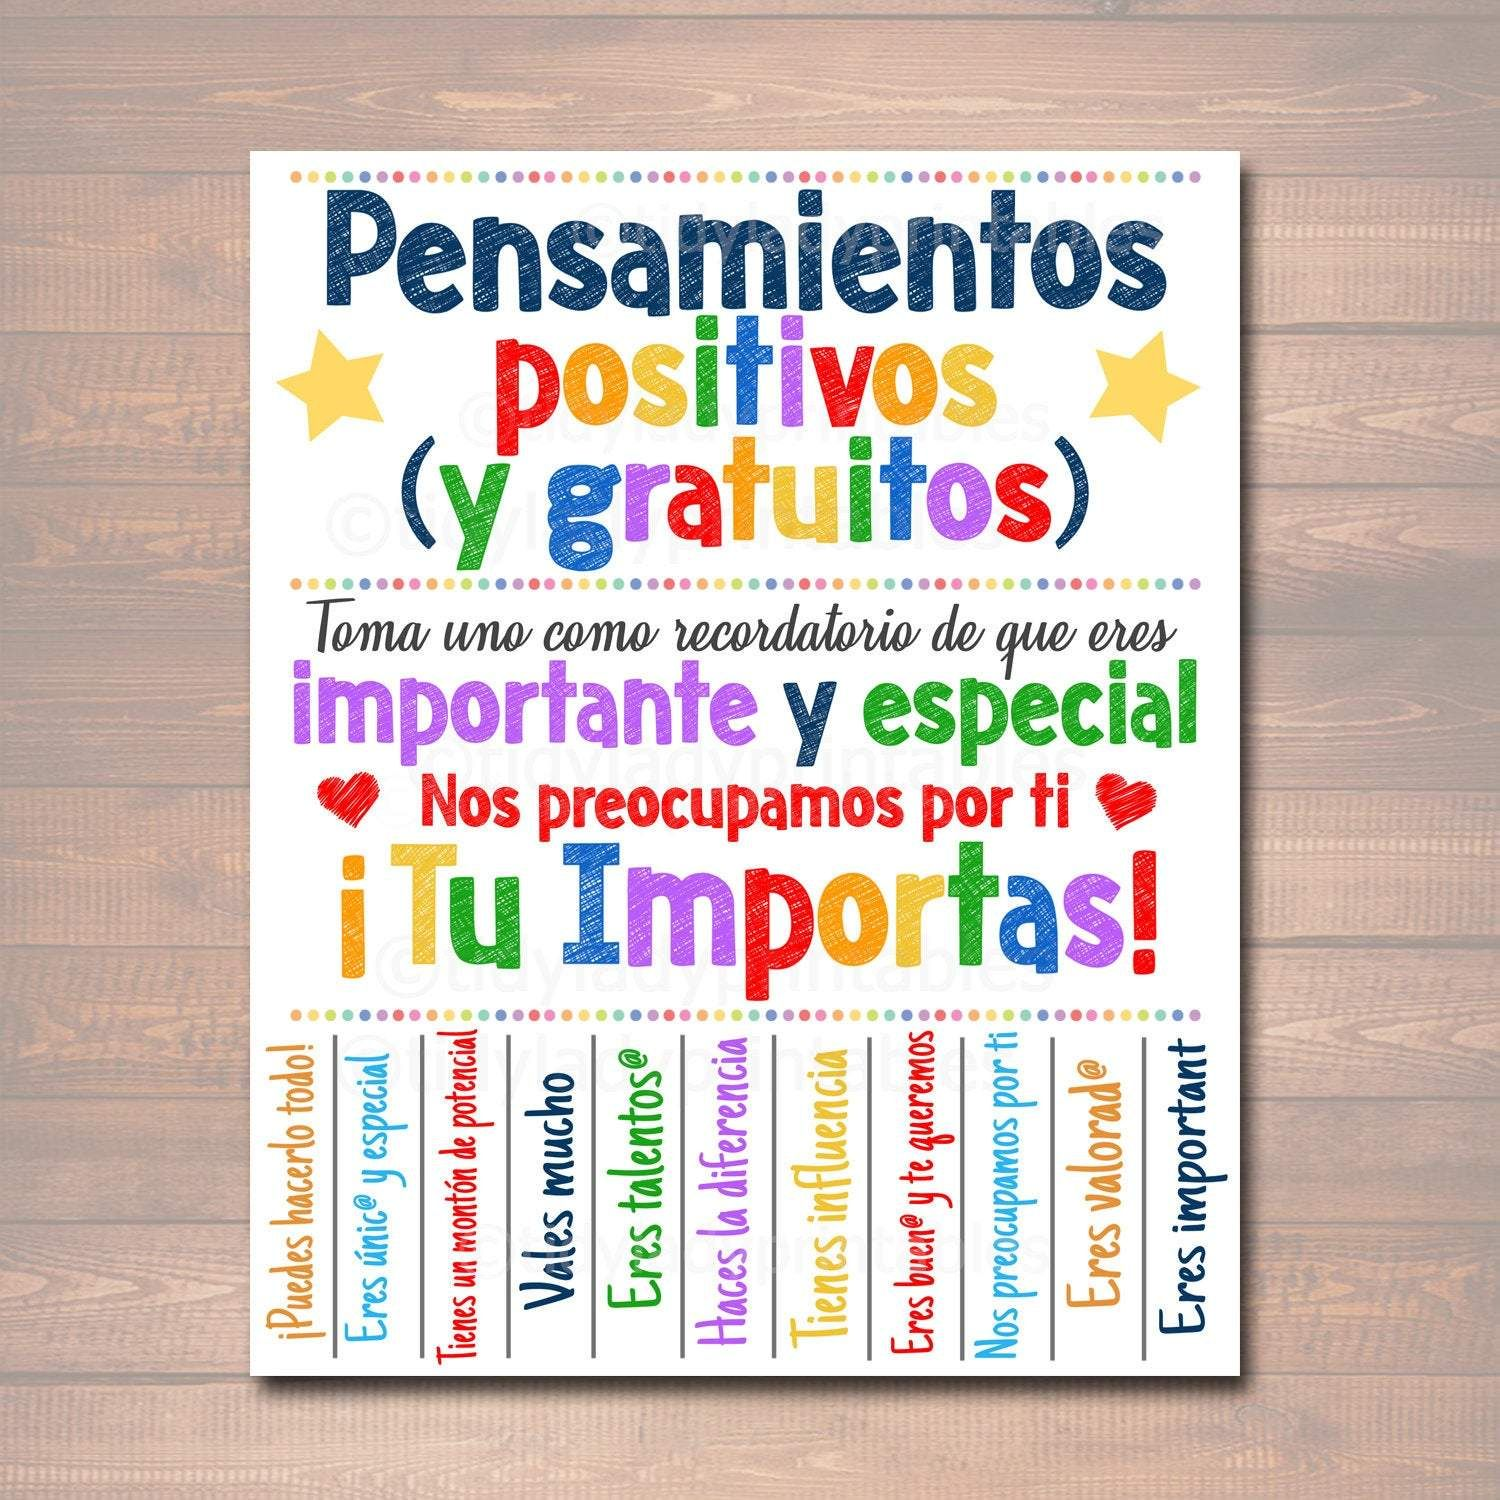 Free positive thoughts spanish tearoff flyer school